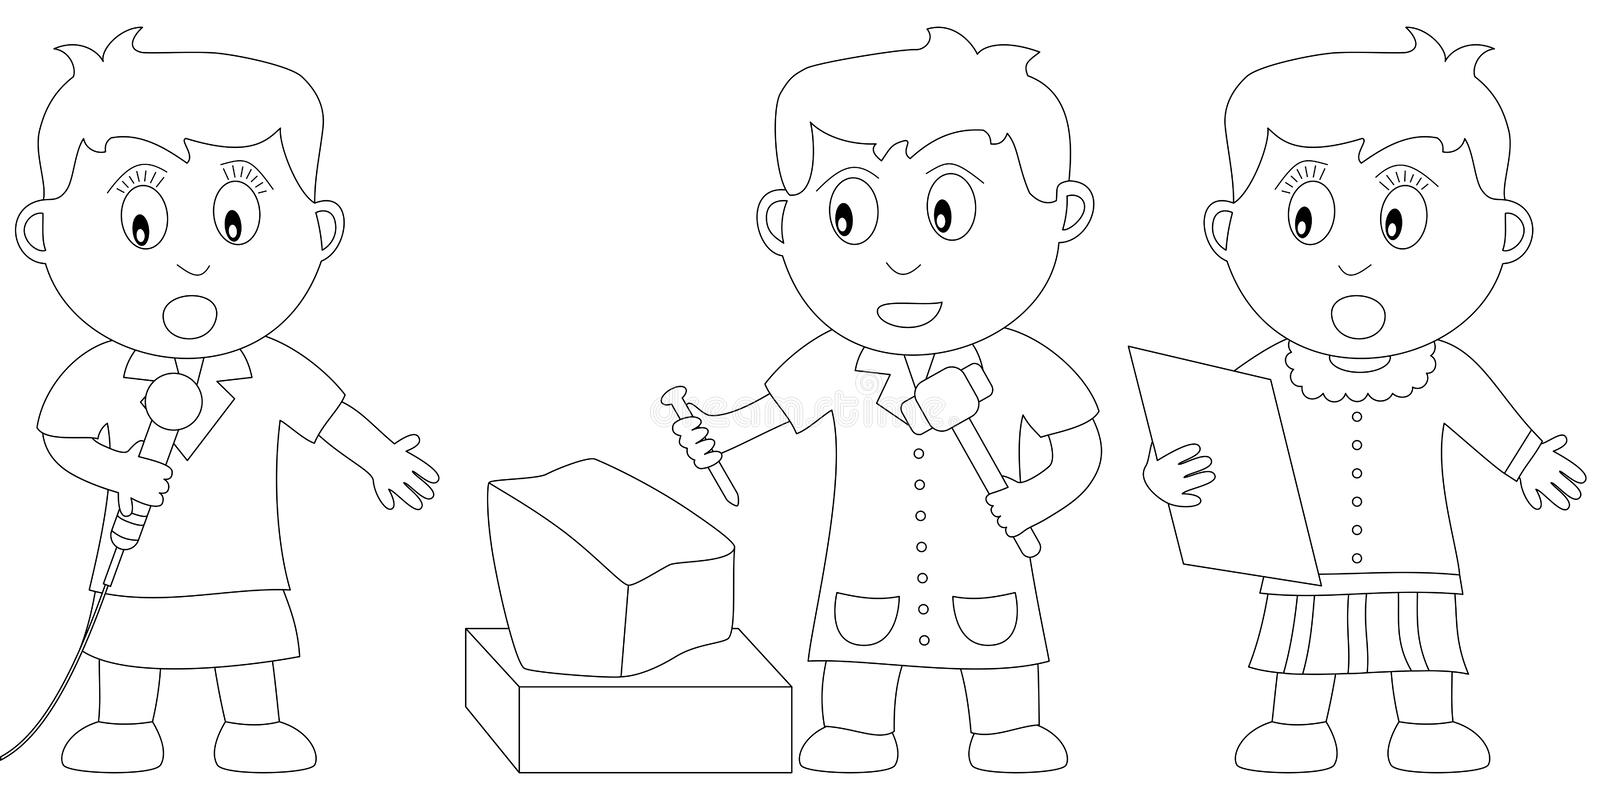 Coloring Book For Kids [15] Royalty Free Stock Photo